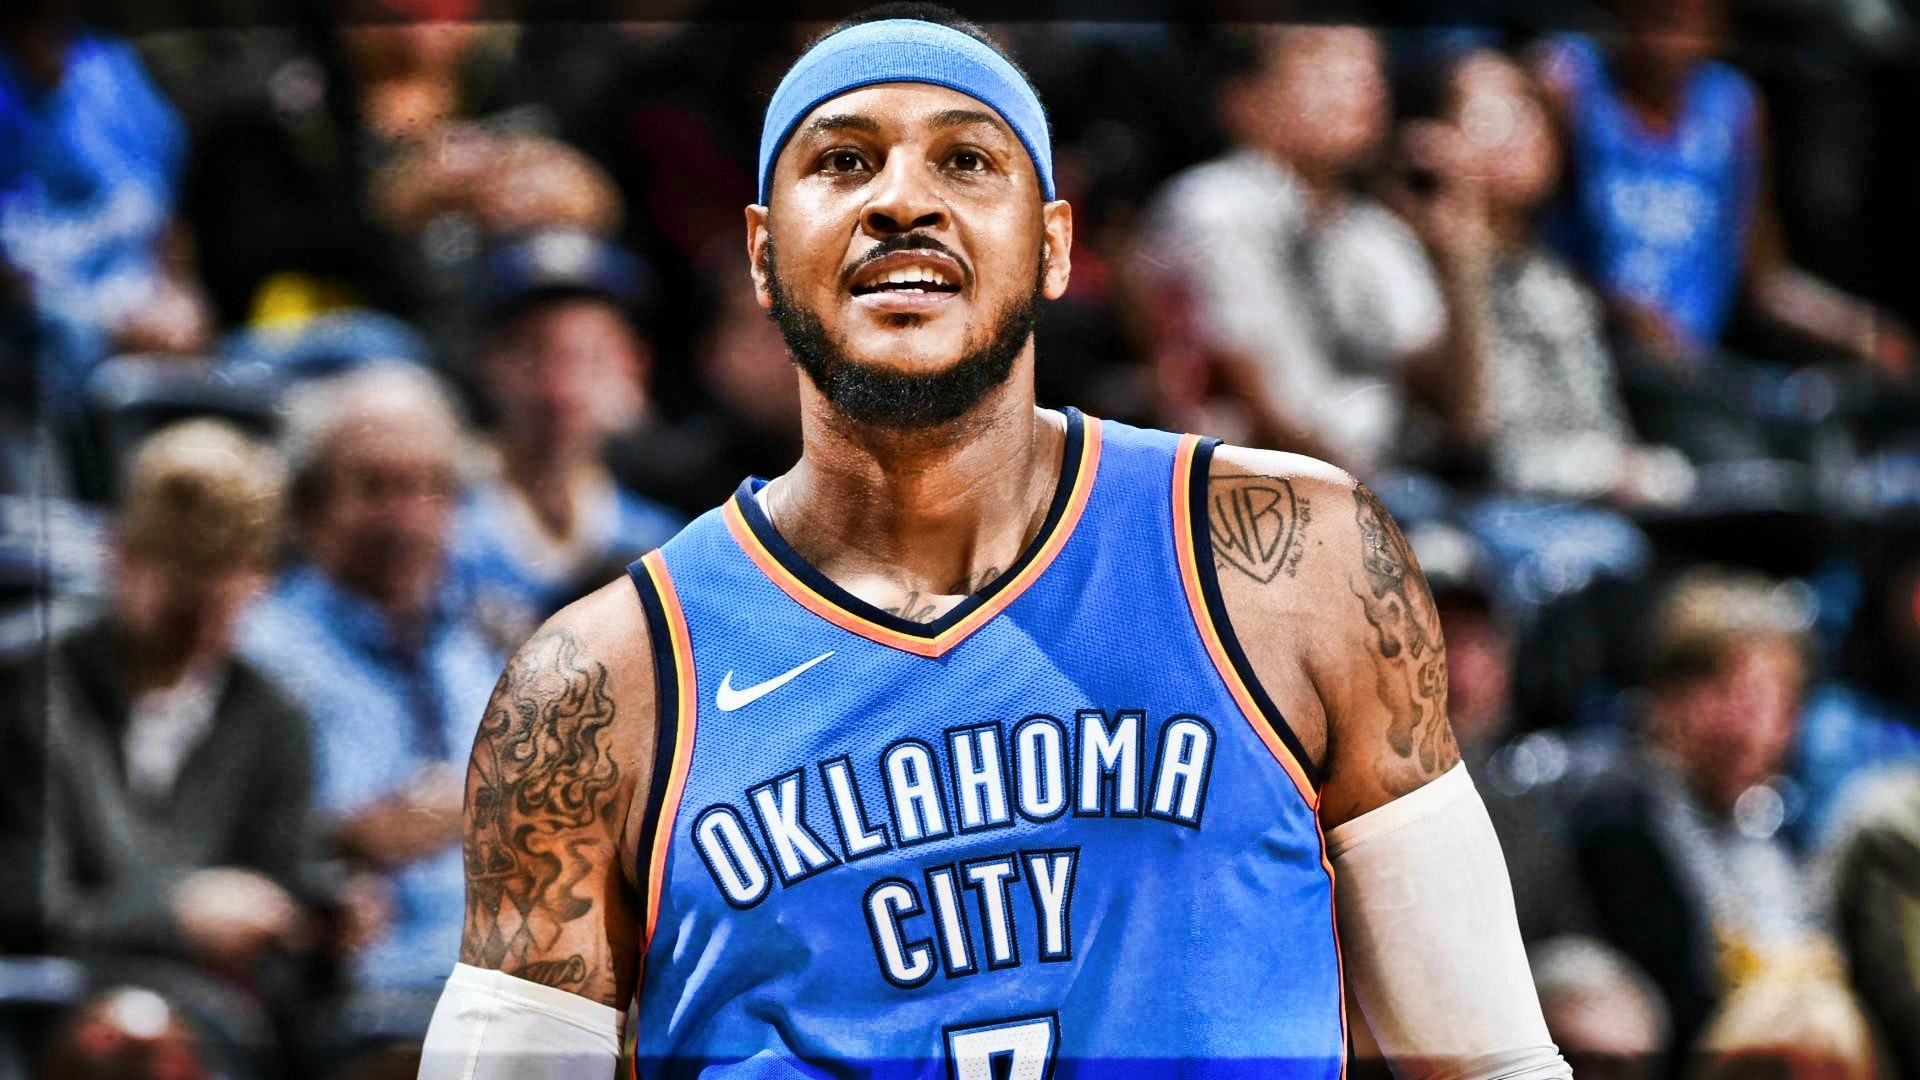 Is Carmelo Anthony The Most Overpaid Player in the NBA?